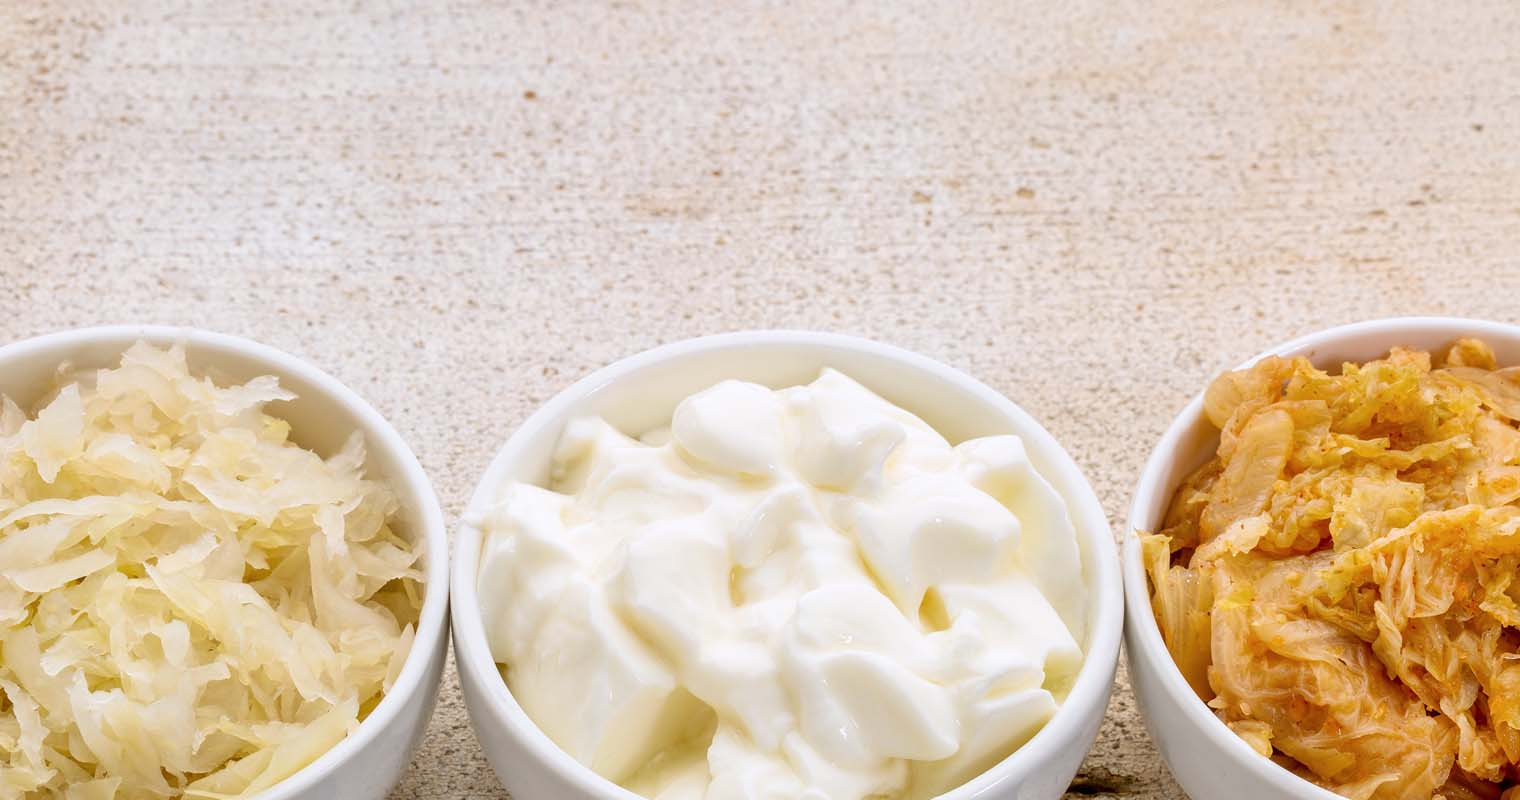 6 Signs You Need Probiotics